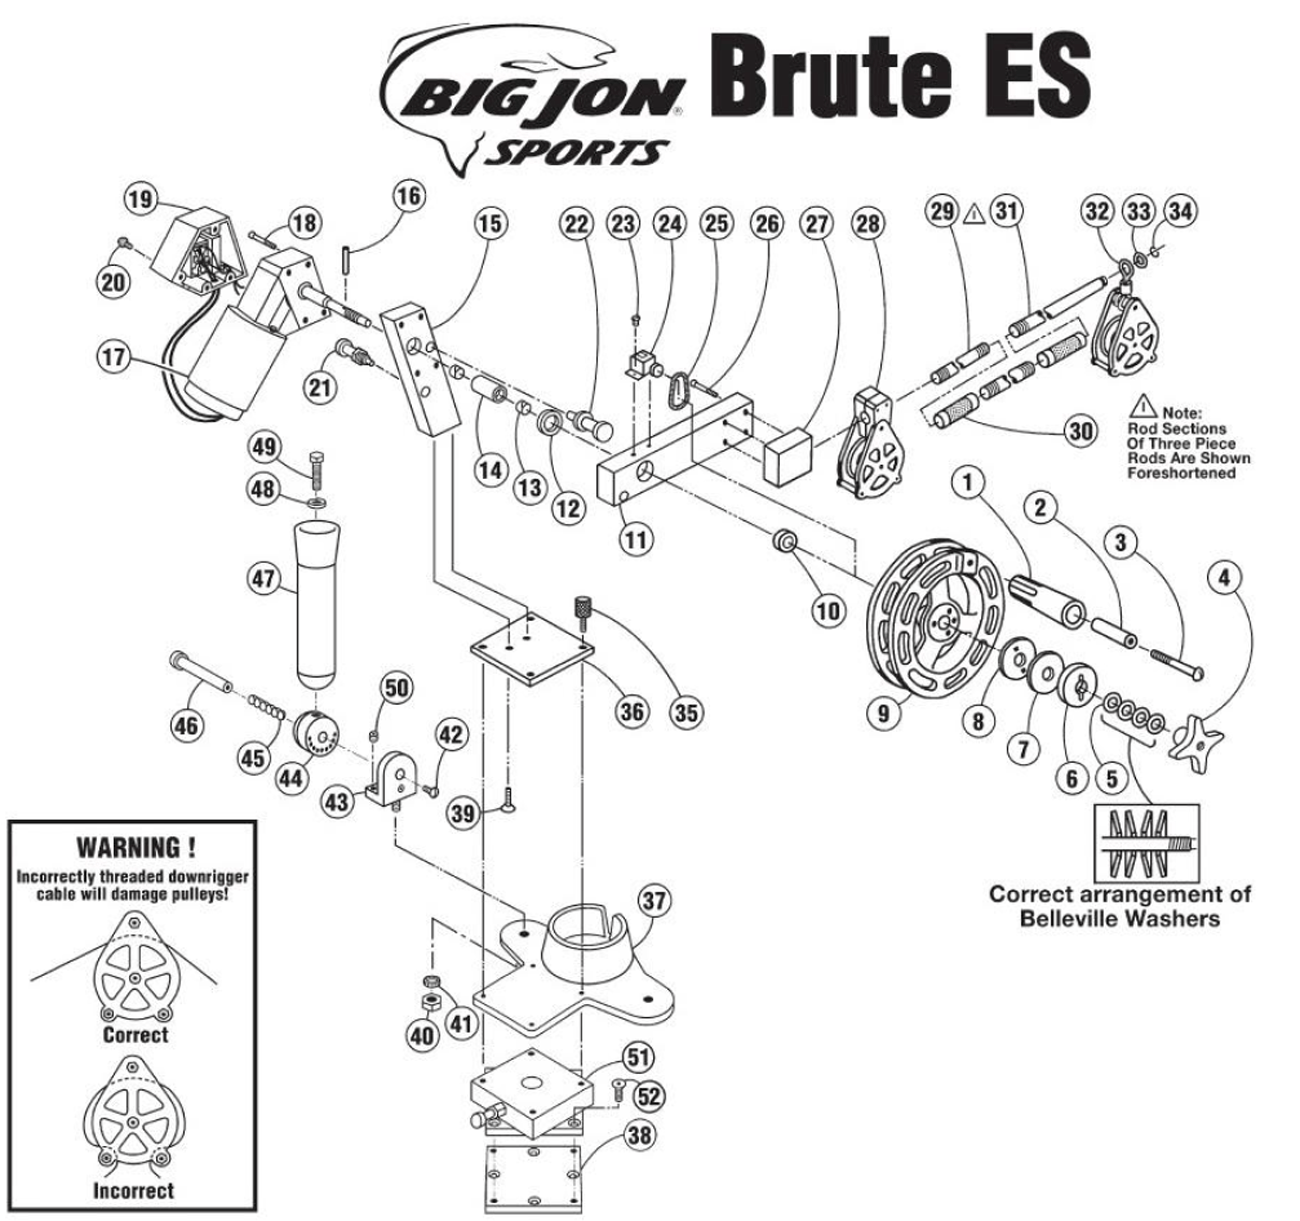 Order Big Jon Brute Es Electric Downrigger Parts Online At